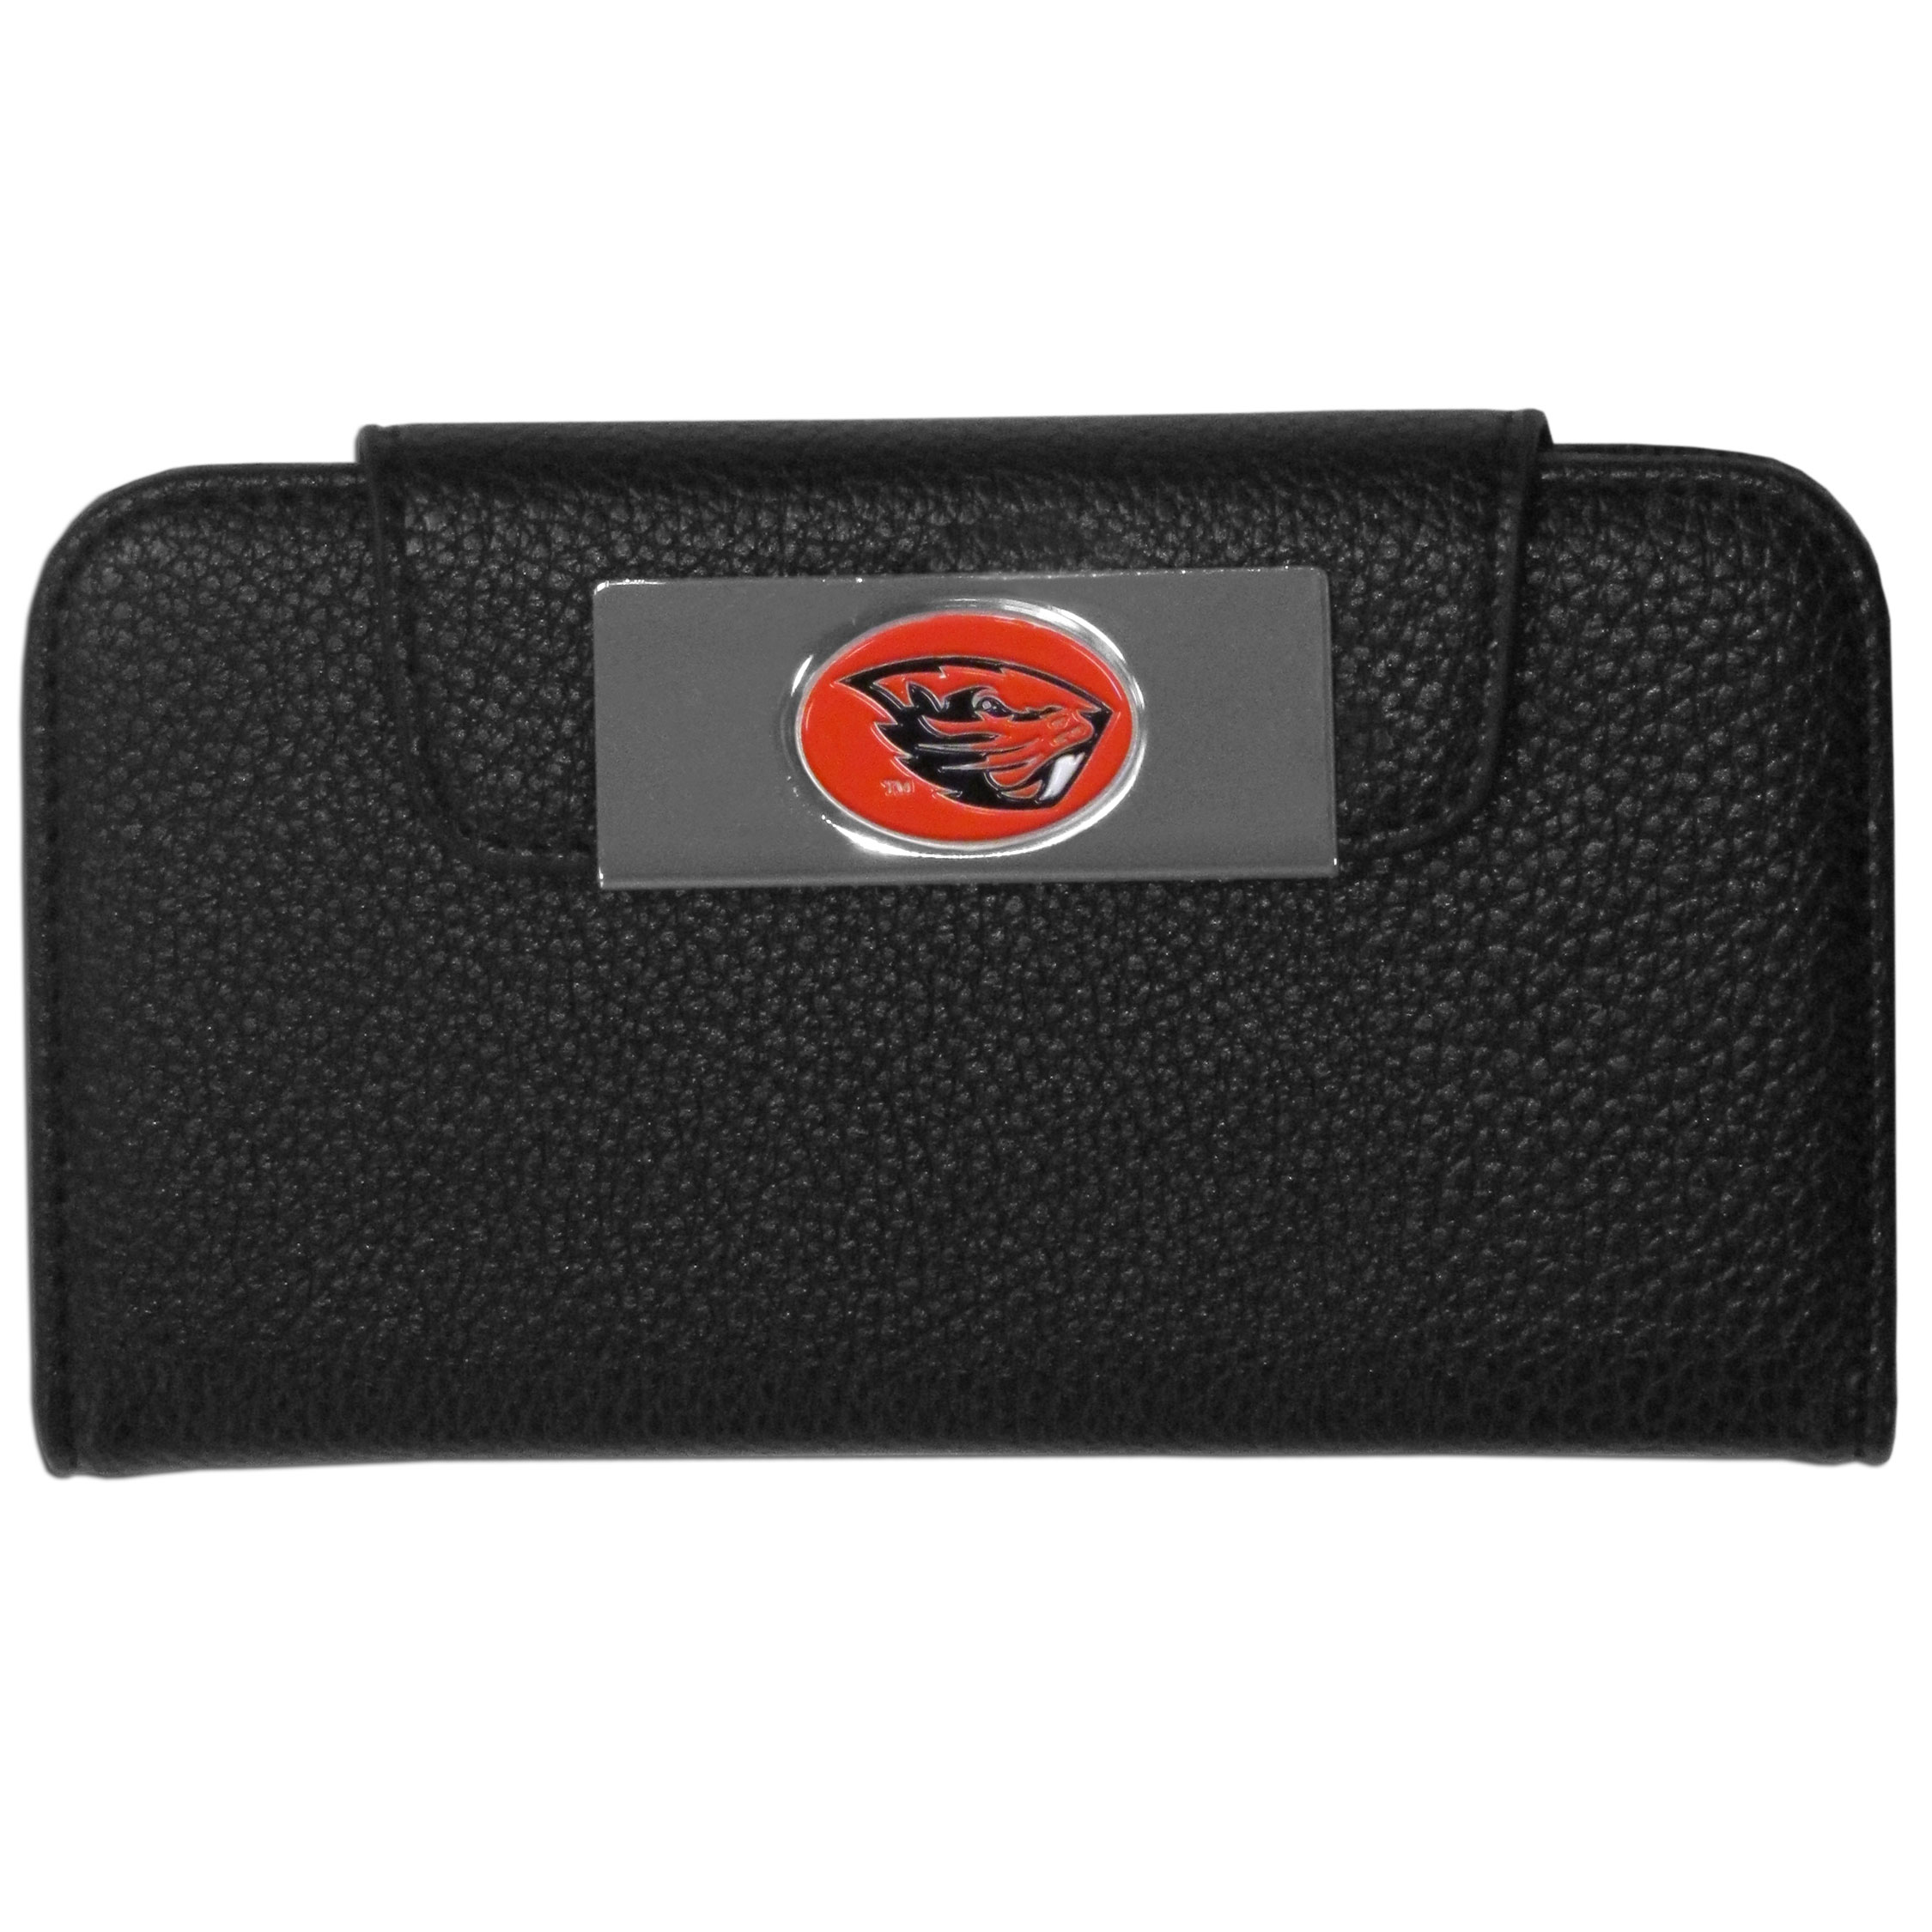 Oregon St. Beavers iPhone 5/5S Wallet Case - This new & wildly popular case is ideal for those who like to travel light! The stylish case has an inner hard shell that securely holds your phone while allowing complete access to the phone's functionality. The flip cover has slots for credit cards, business cards and identification. The magnetic flip cover has a metal Oregon St. Beavers emblem on a high polish chrome backing. Fits the iPhone 5/5S